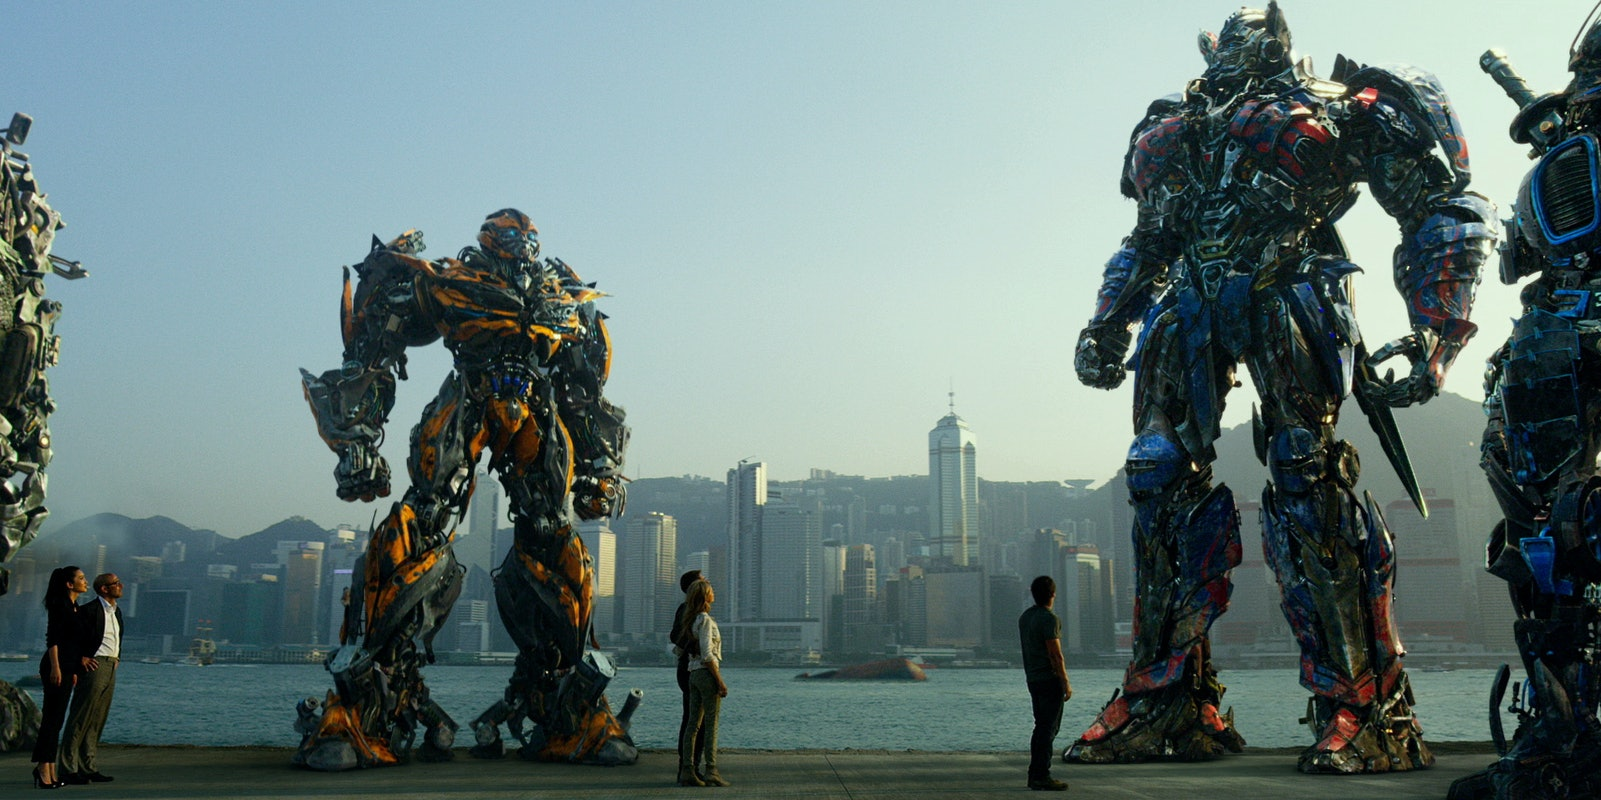 Hope You Want 14 More 'Transformers' Movies From Michael Bay